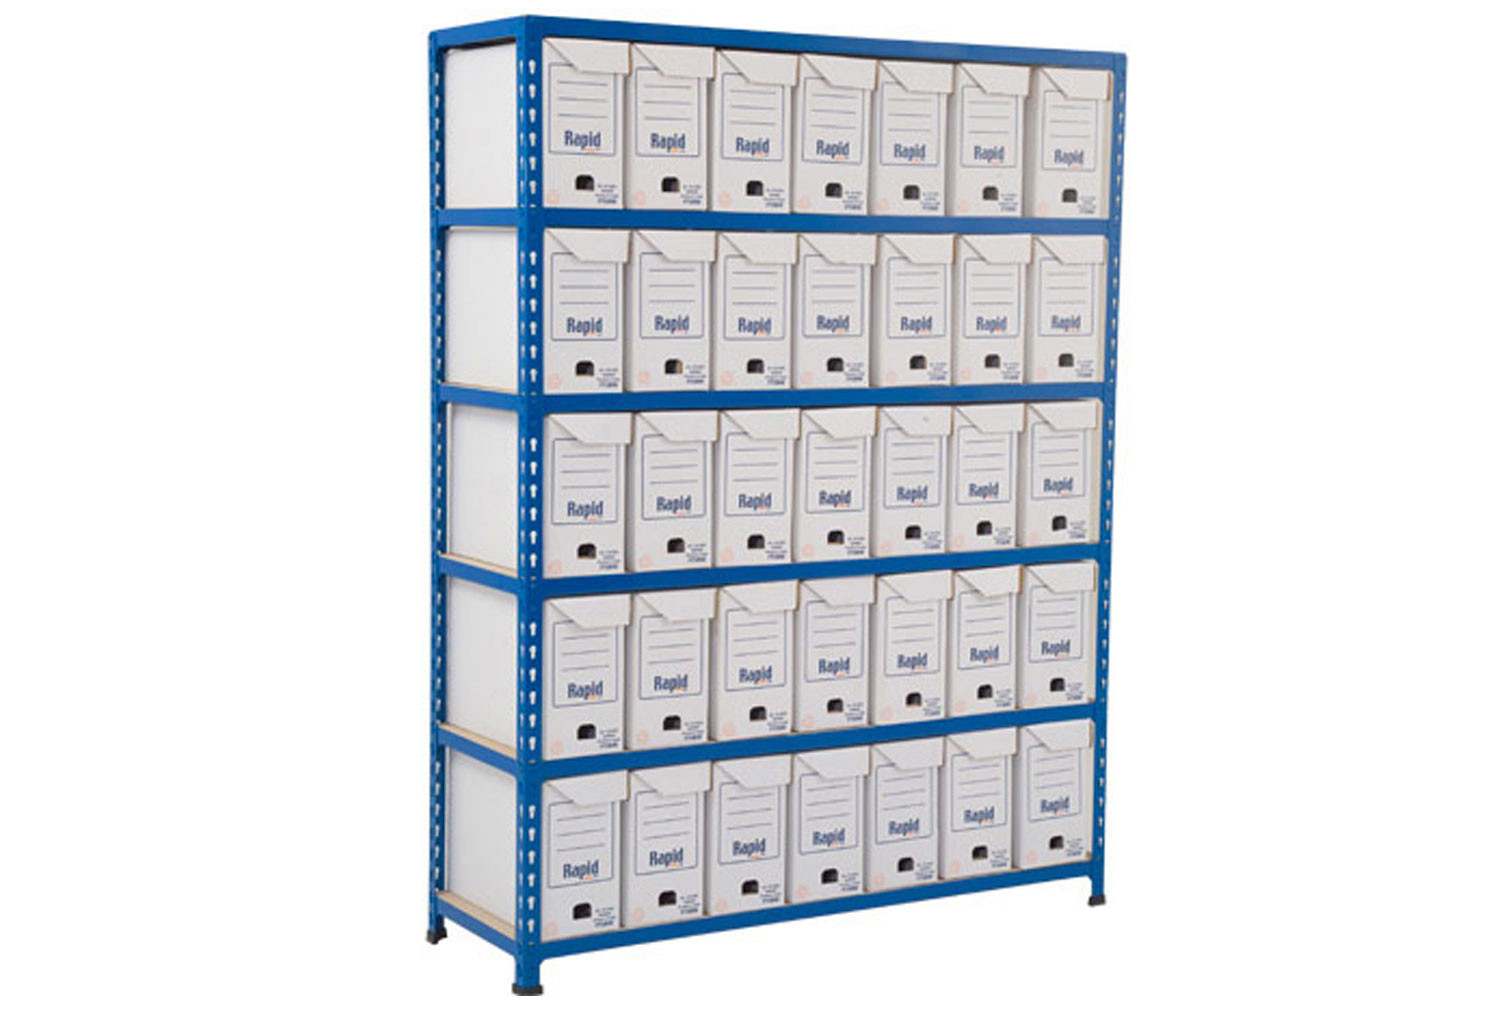 Rapid 2 flip top document storage bay with 35 boxes